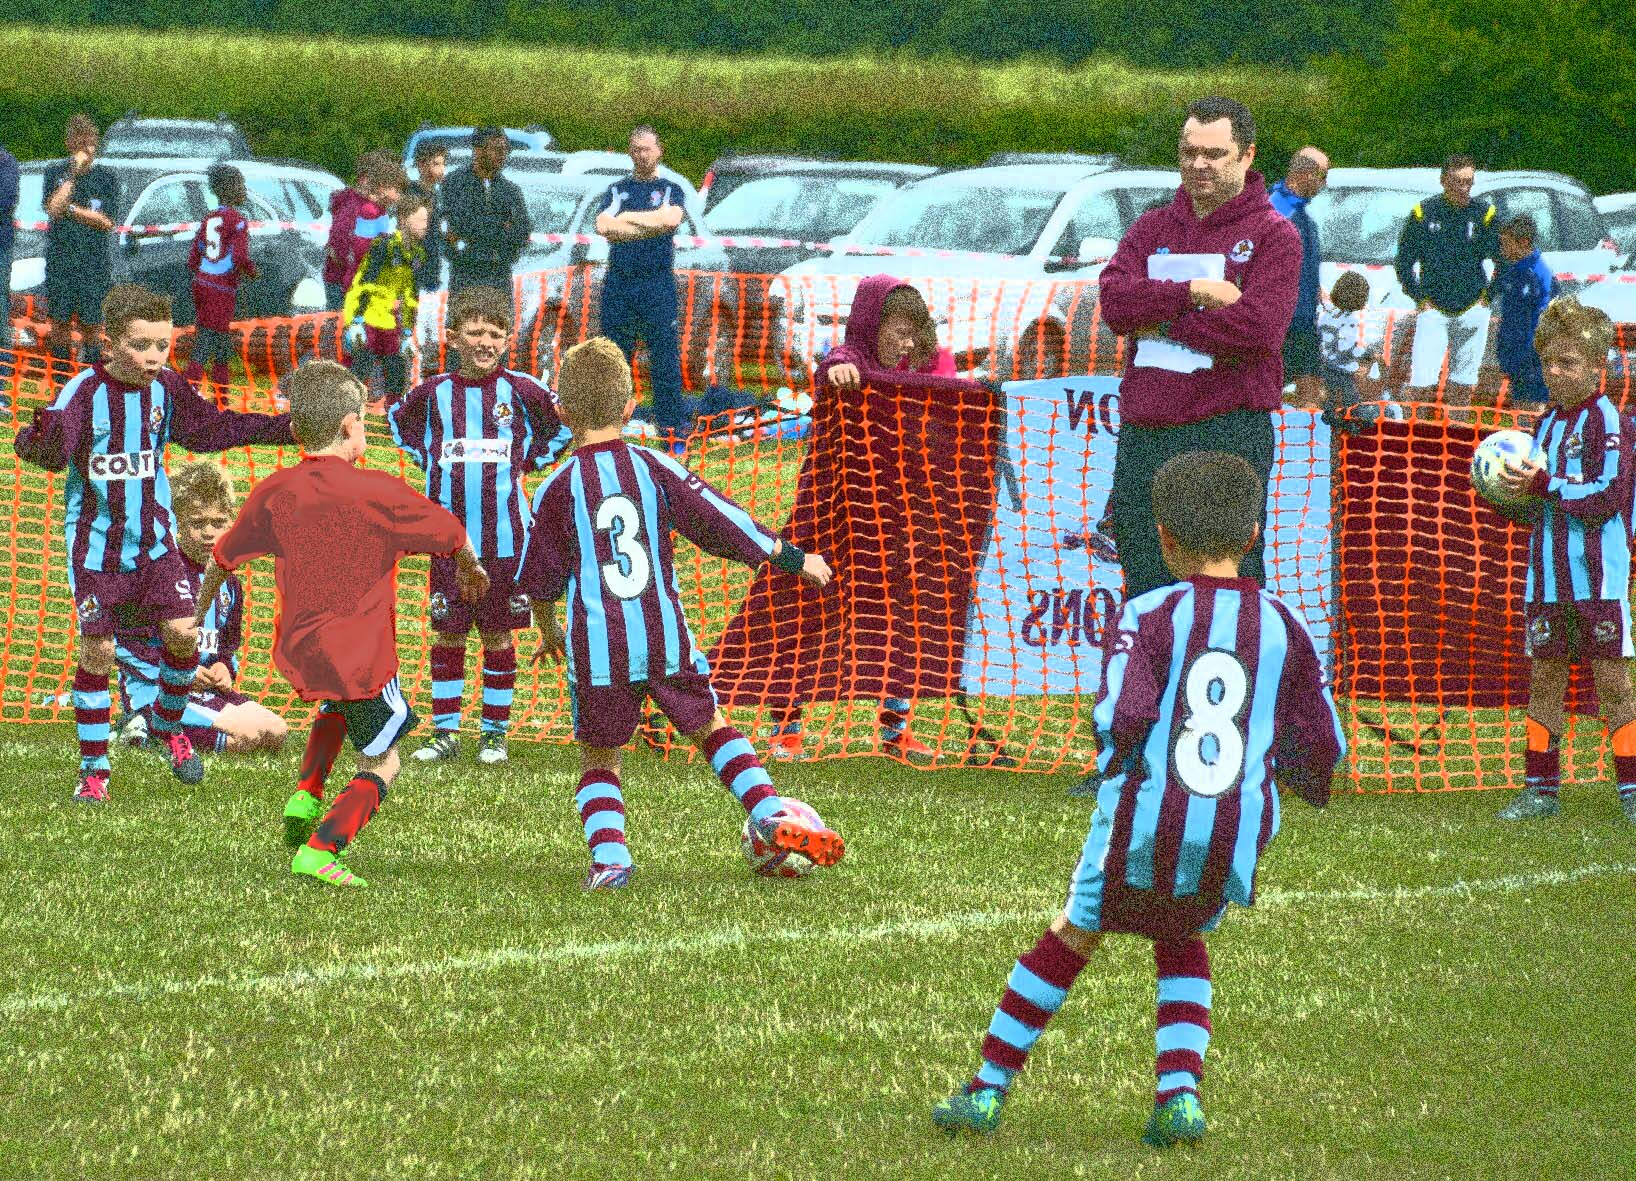 Lions U11 Whirlwinds – Results & Match Reports post thumbnail image